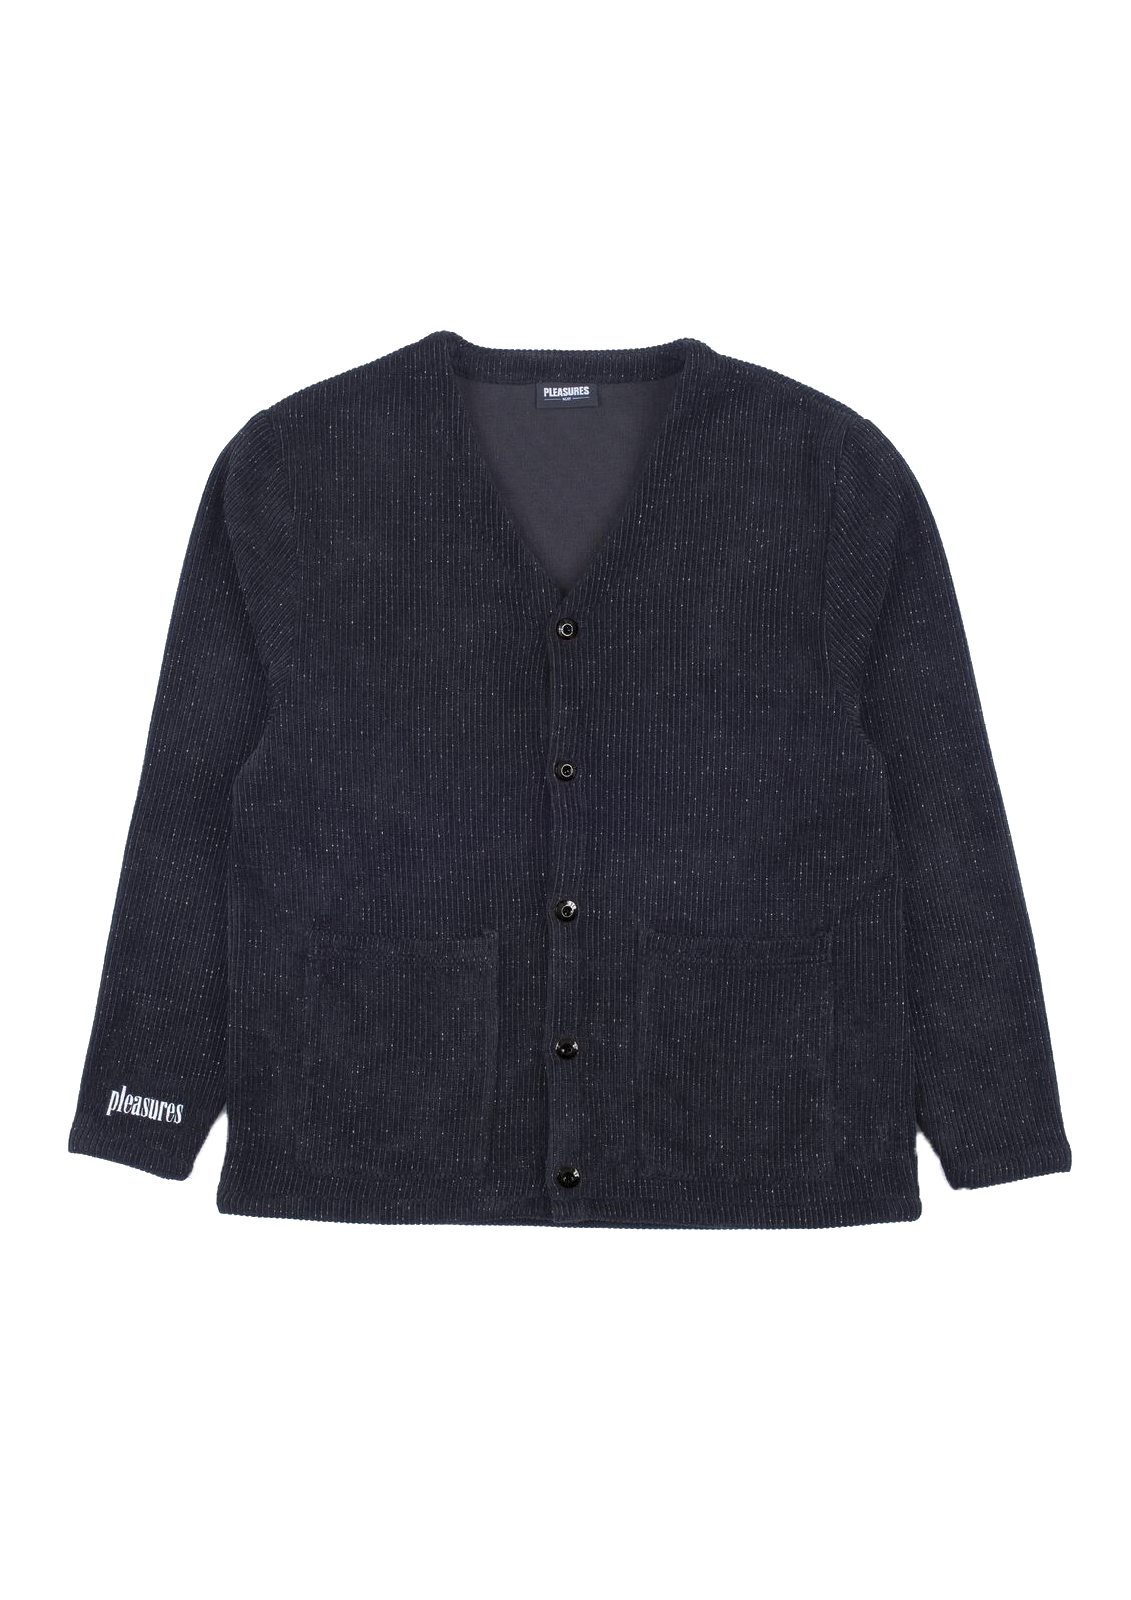 Falling Cardigan Sweater - Black